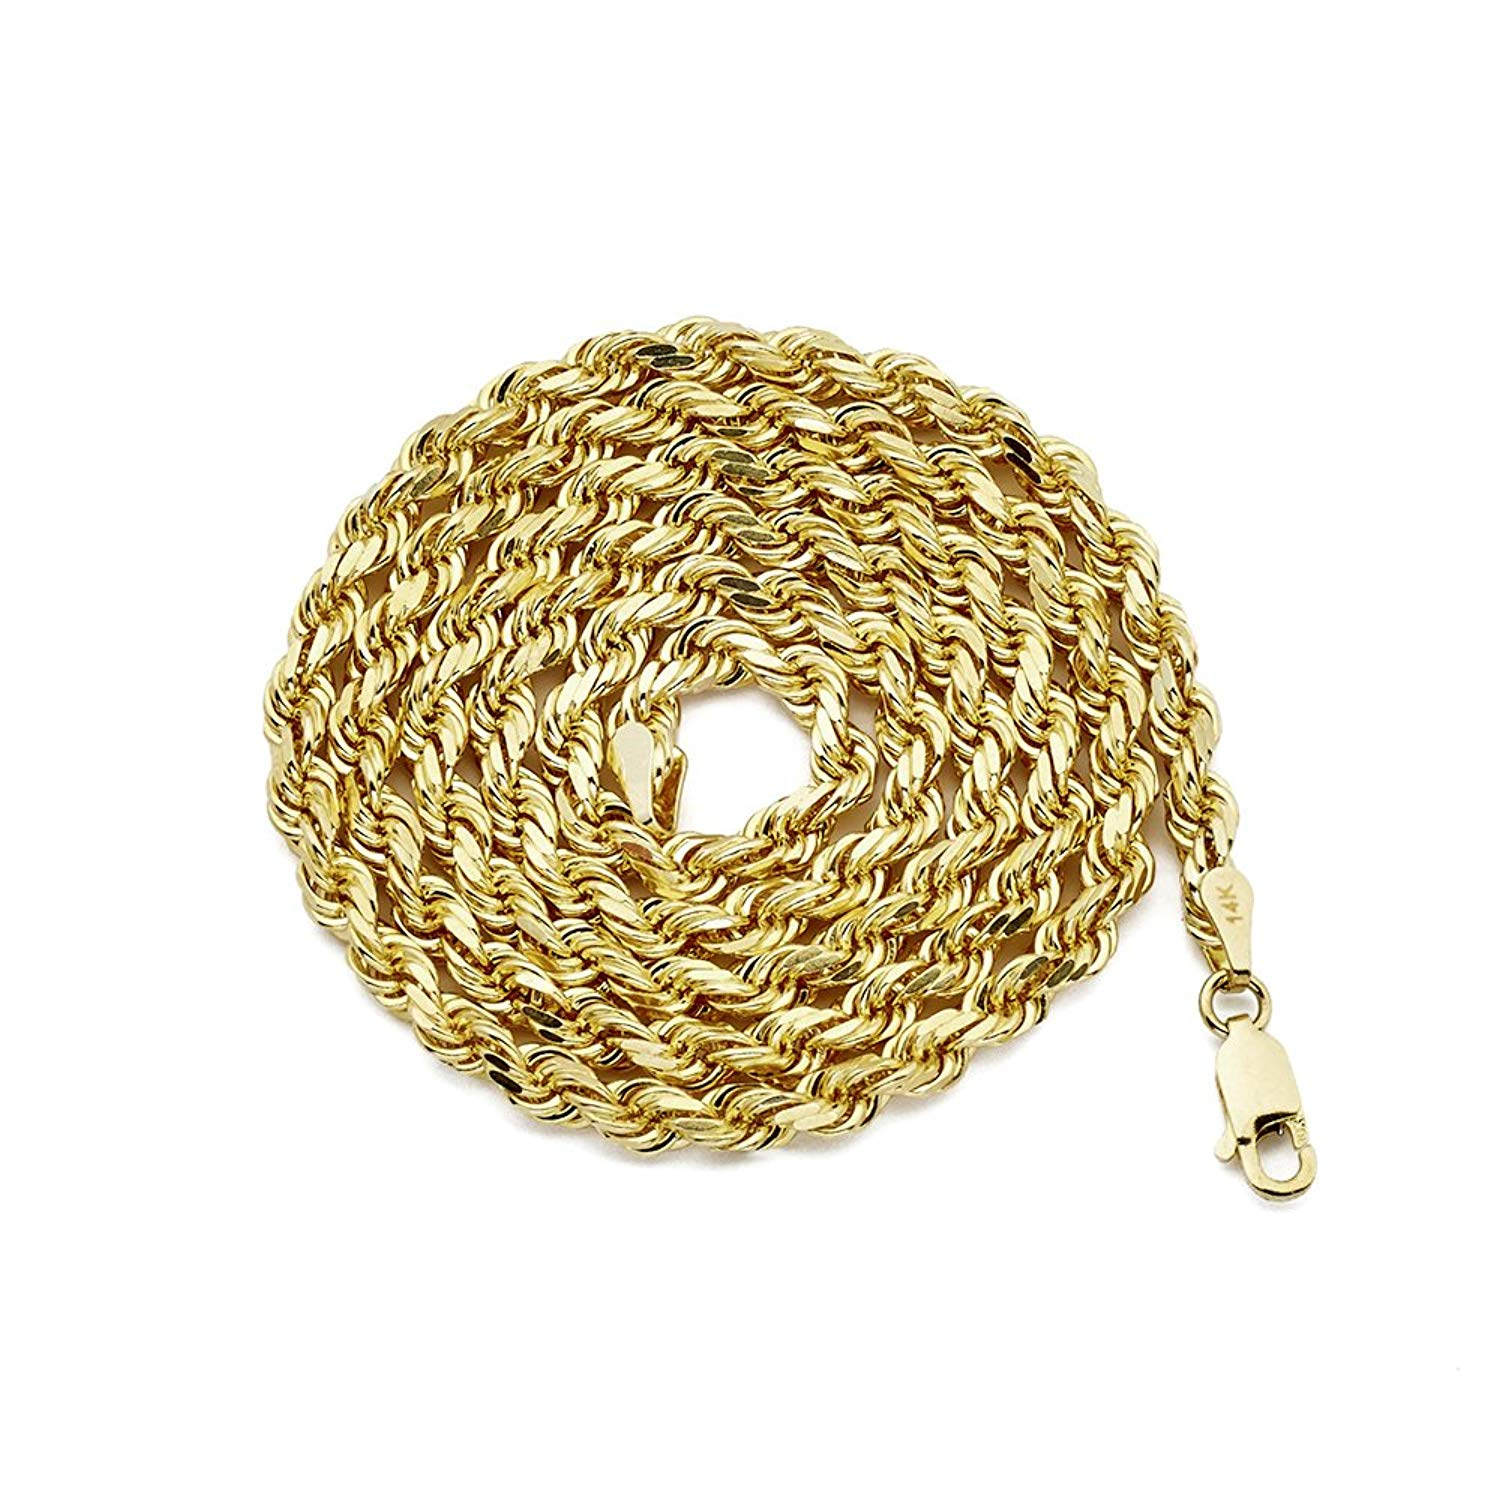 LOVEBLING 14K Yellow Gold 4mm Solid Diamond Cut Rope Chain Necklace Lobster Lock